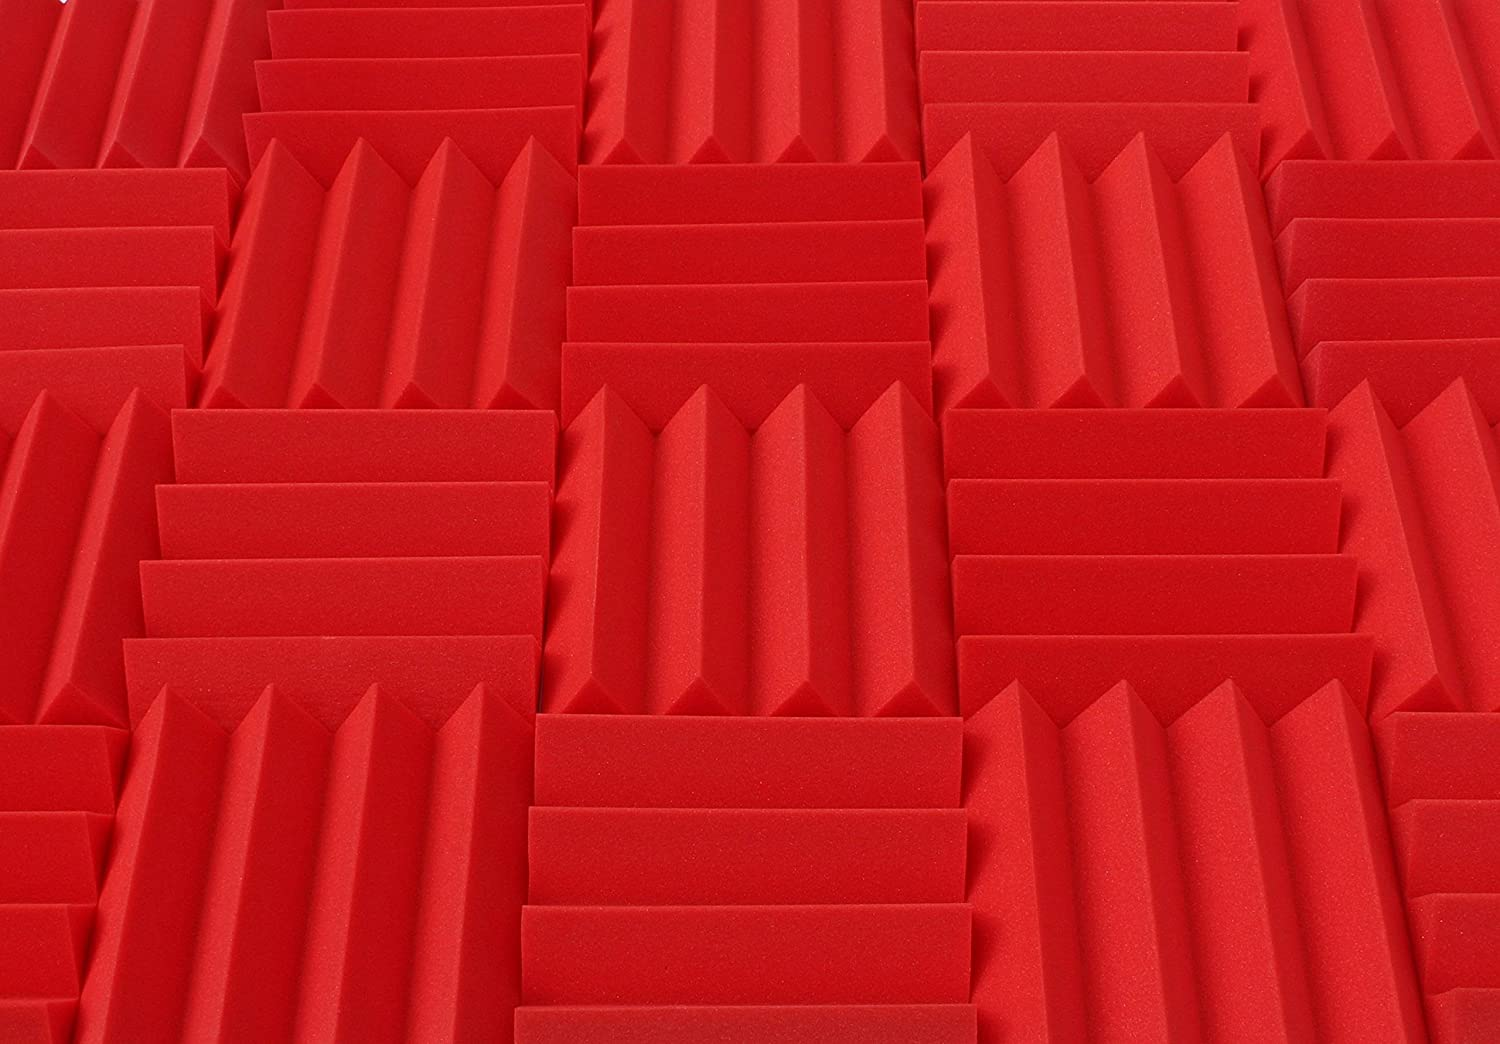 Wedge Style Acoustic Foam Panels 2 Pack - 12in x 12in x 3 Inch Thick Tiles - Soundproofing Acoustic Studio Foam - Red Color